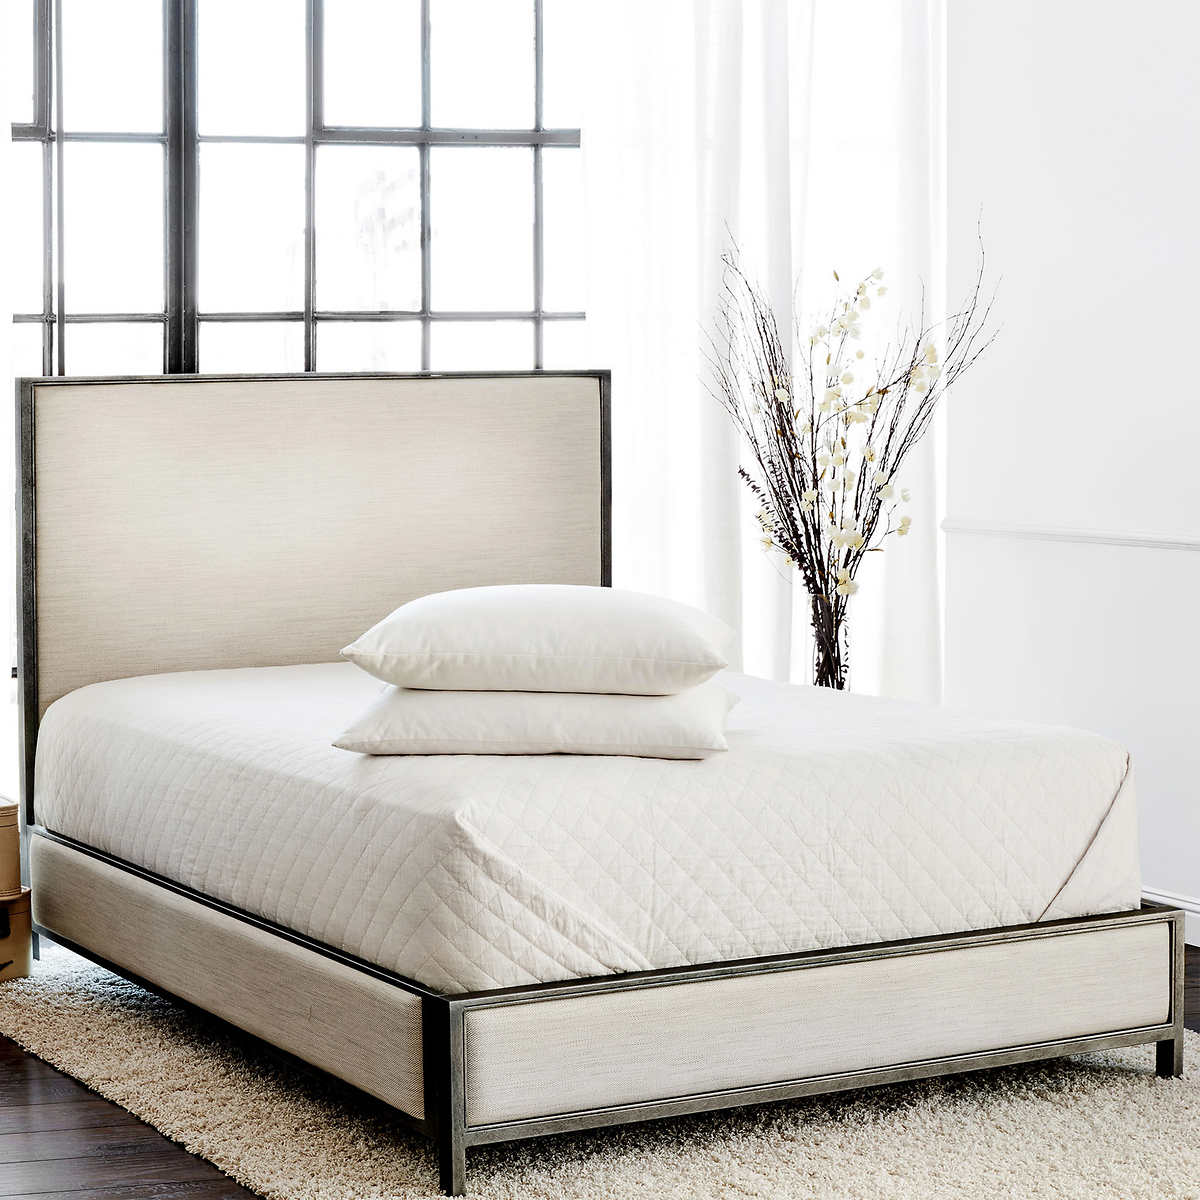 Brentwood Home Ridgecrest Cal King Bed